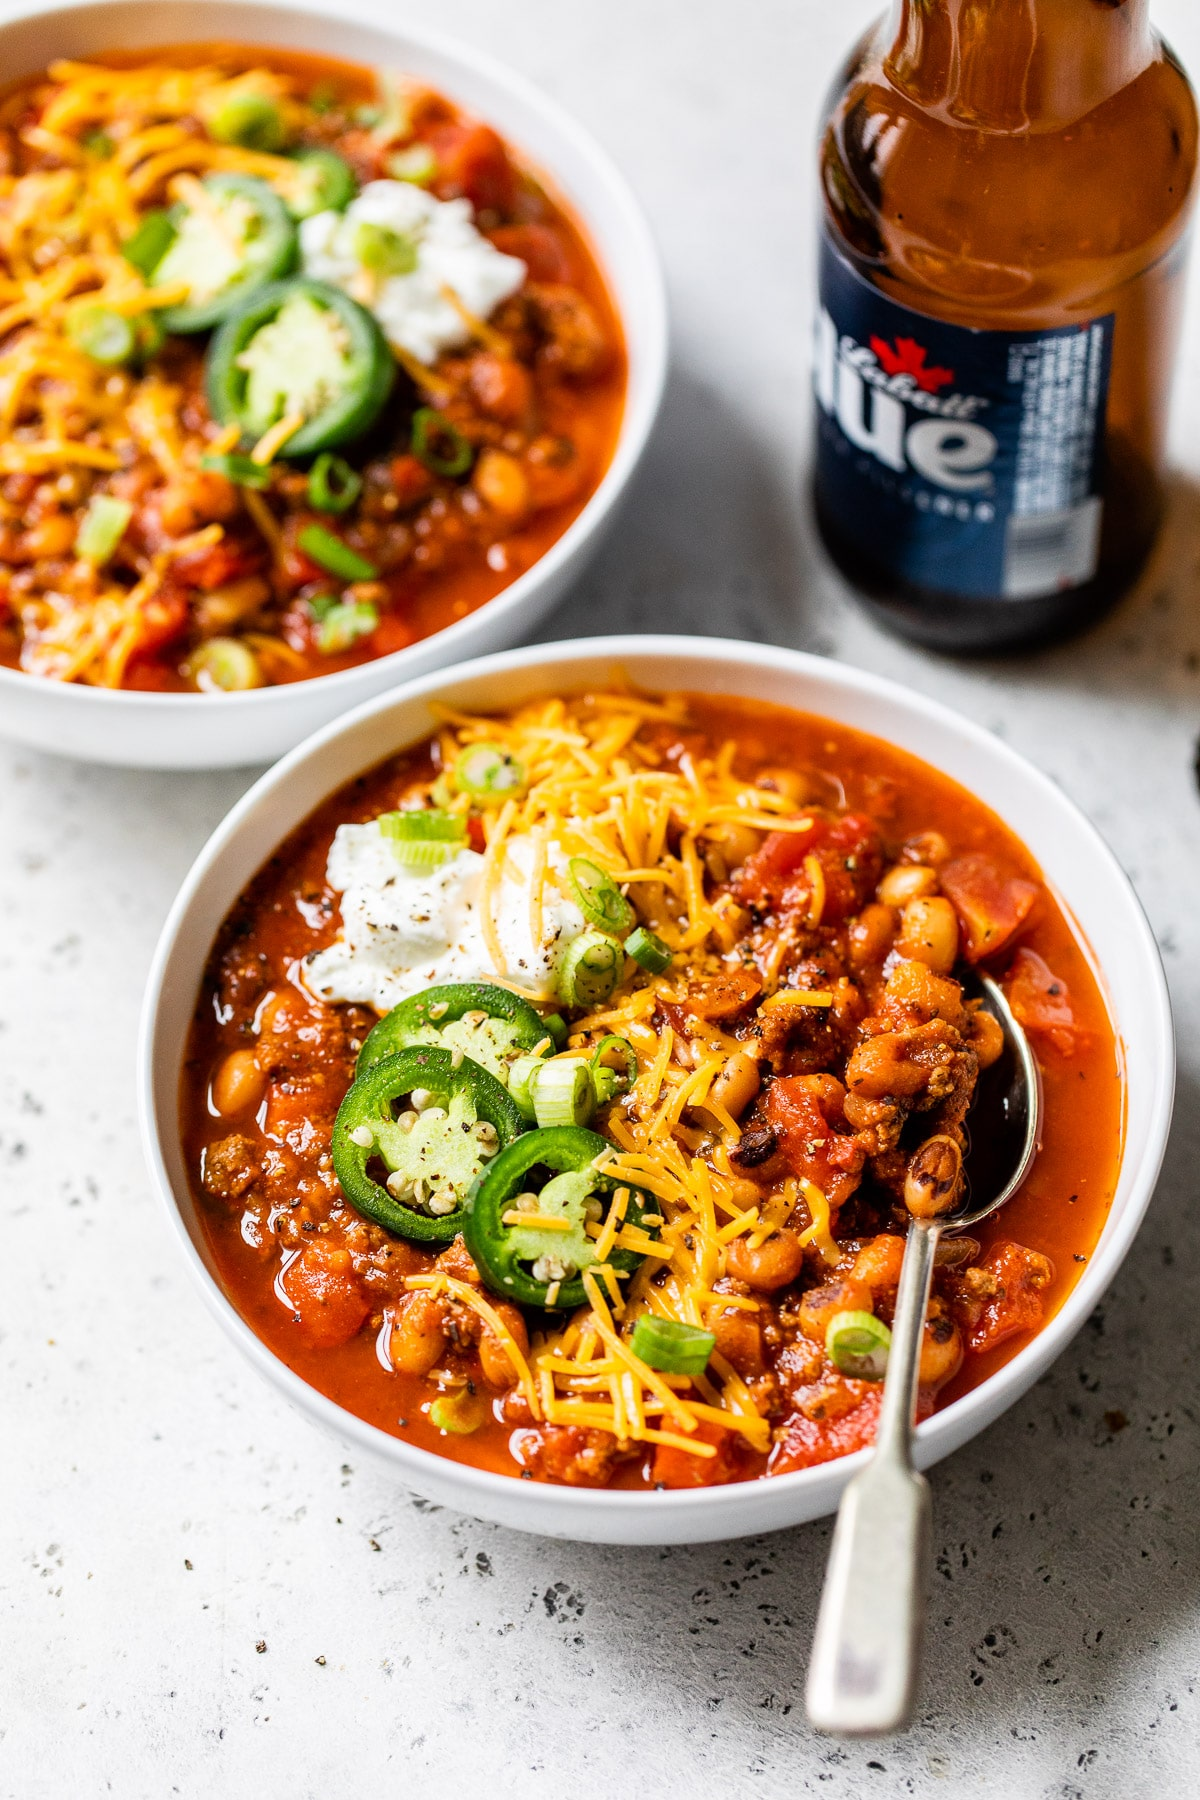 bowl of chili next to a bottle of beer